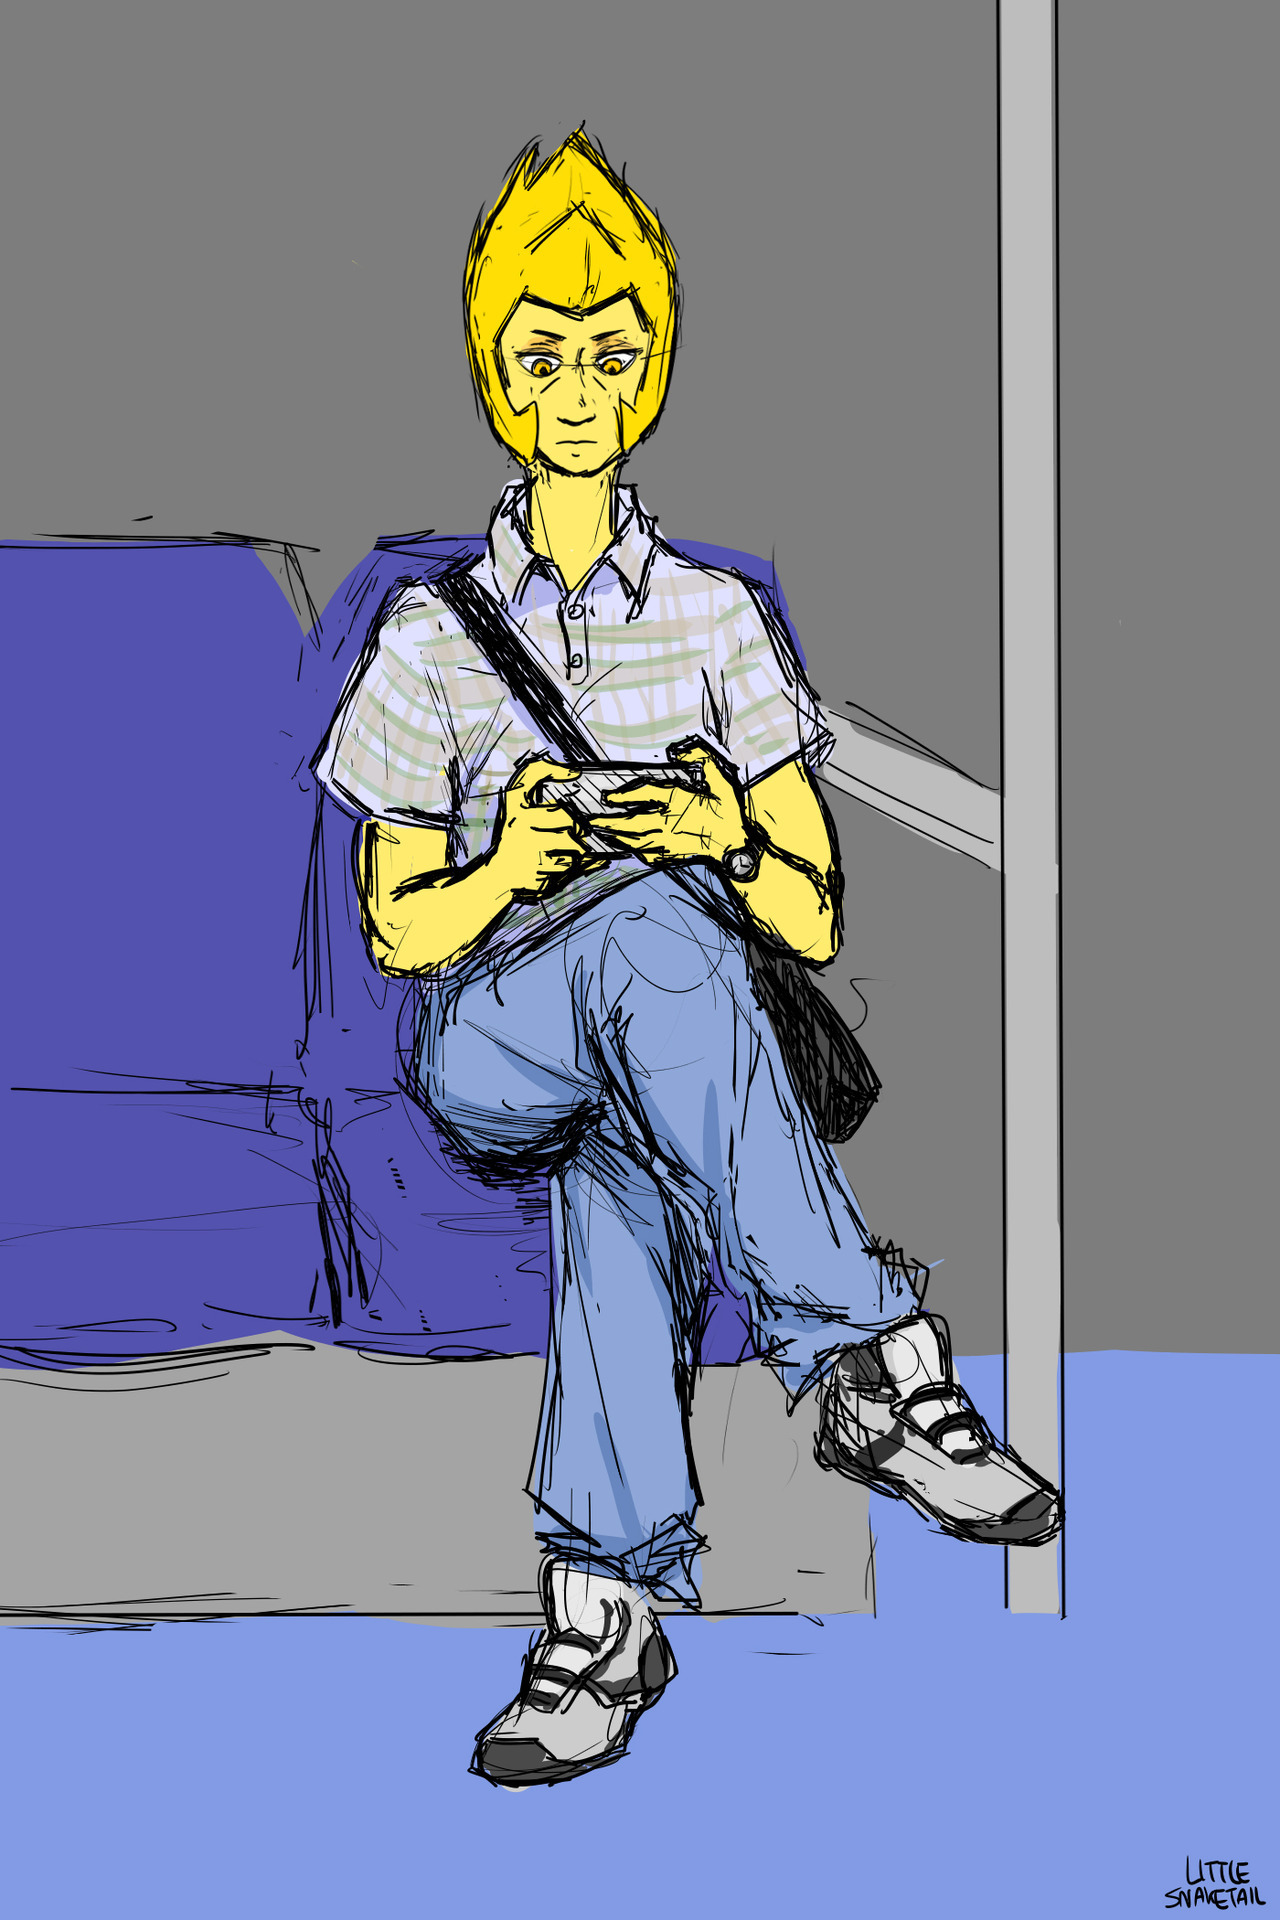 Yellow Diamond dressed as some dude I saw on the subway two days ago… because why not